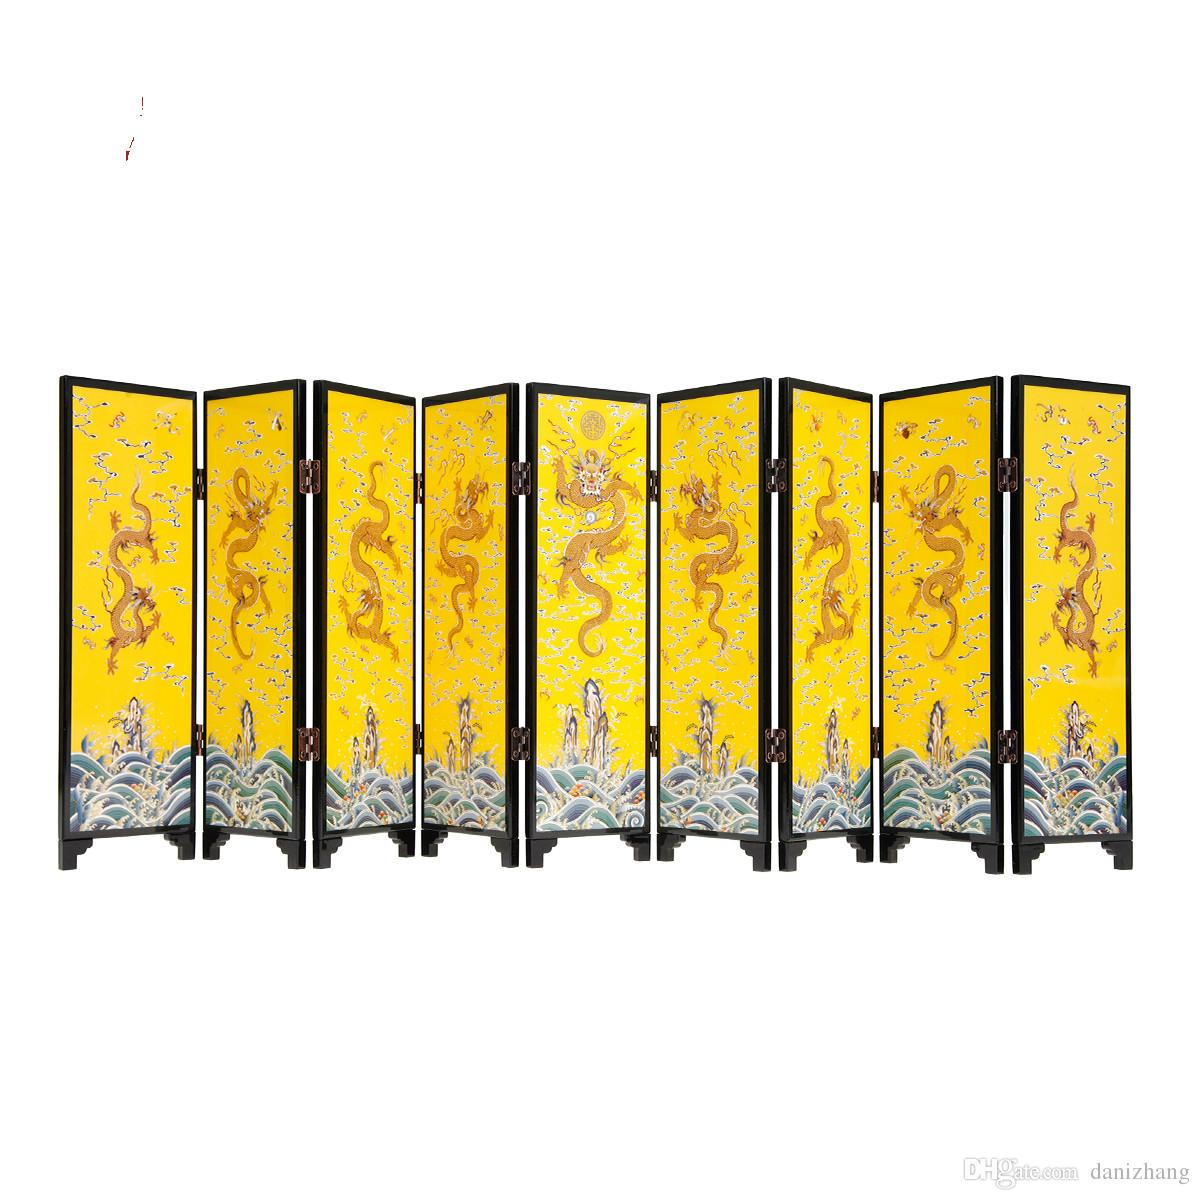 Lifelike Gloden Kowloon Nine films Screen Decoration Hot stamping lacquerware material Gift Package 23.3x67cm